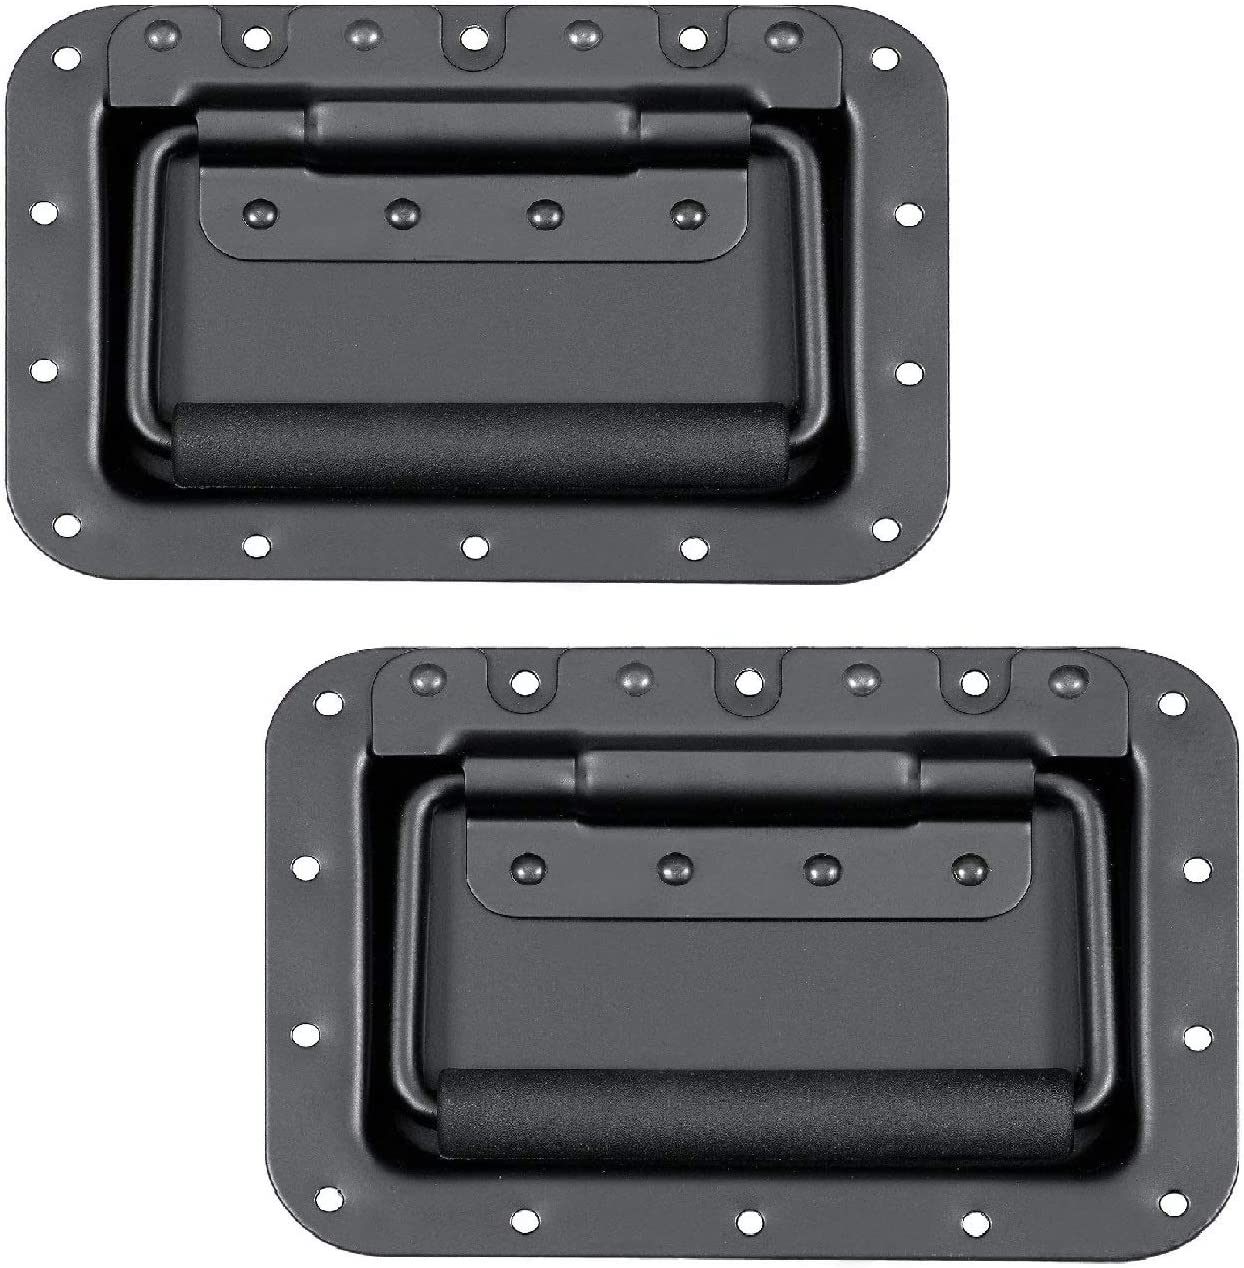 1 Pair MIYAKO USA Set of 2 Spring Loaded Speaker Cabinet Handles 5.5 x 3.9 inches with recessed Back Black Metal